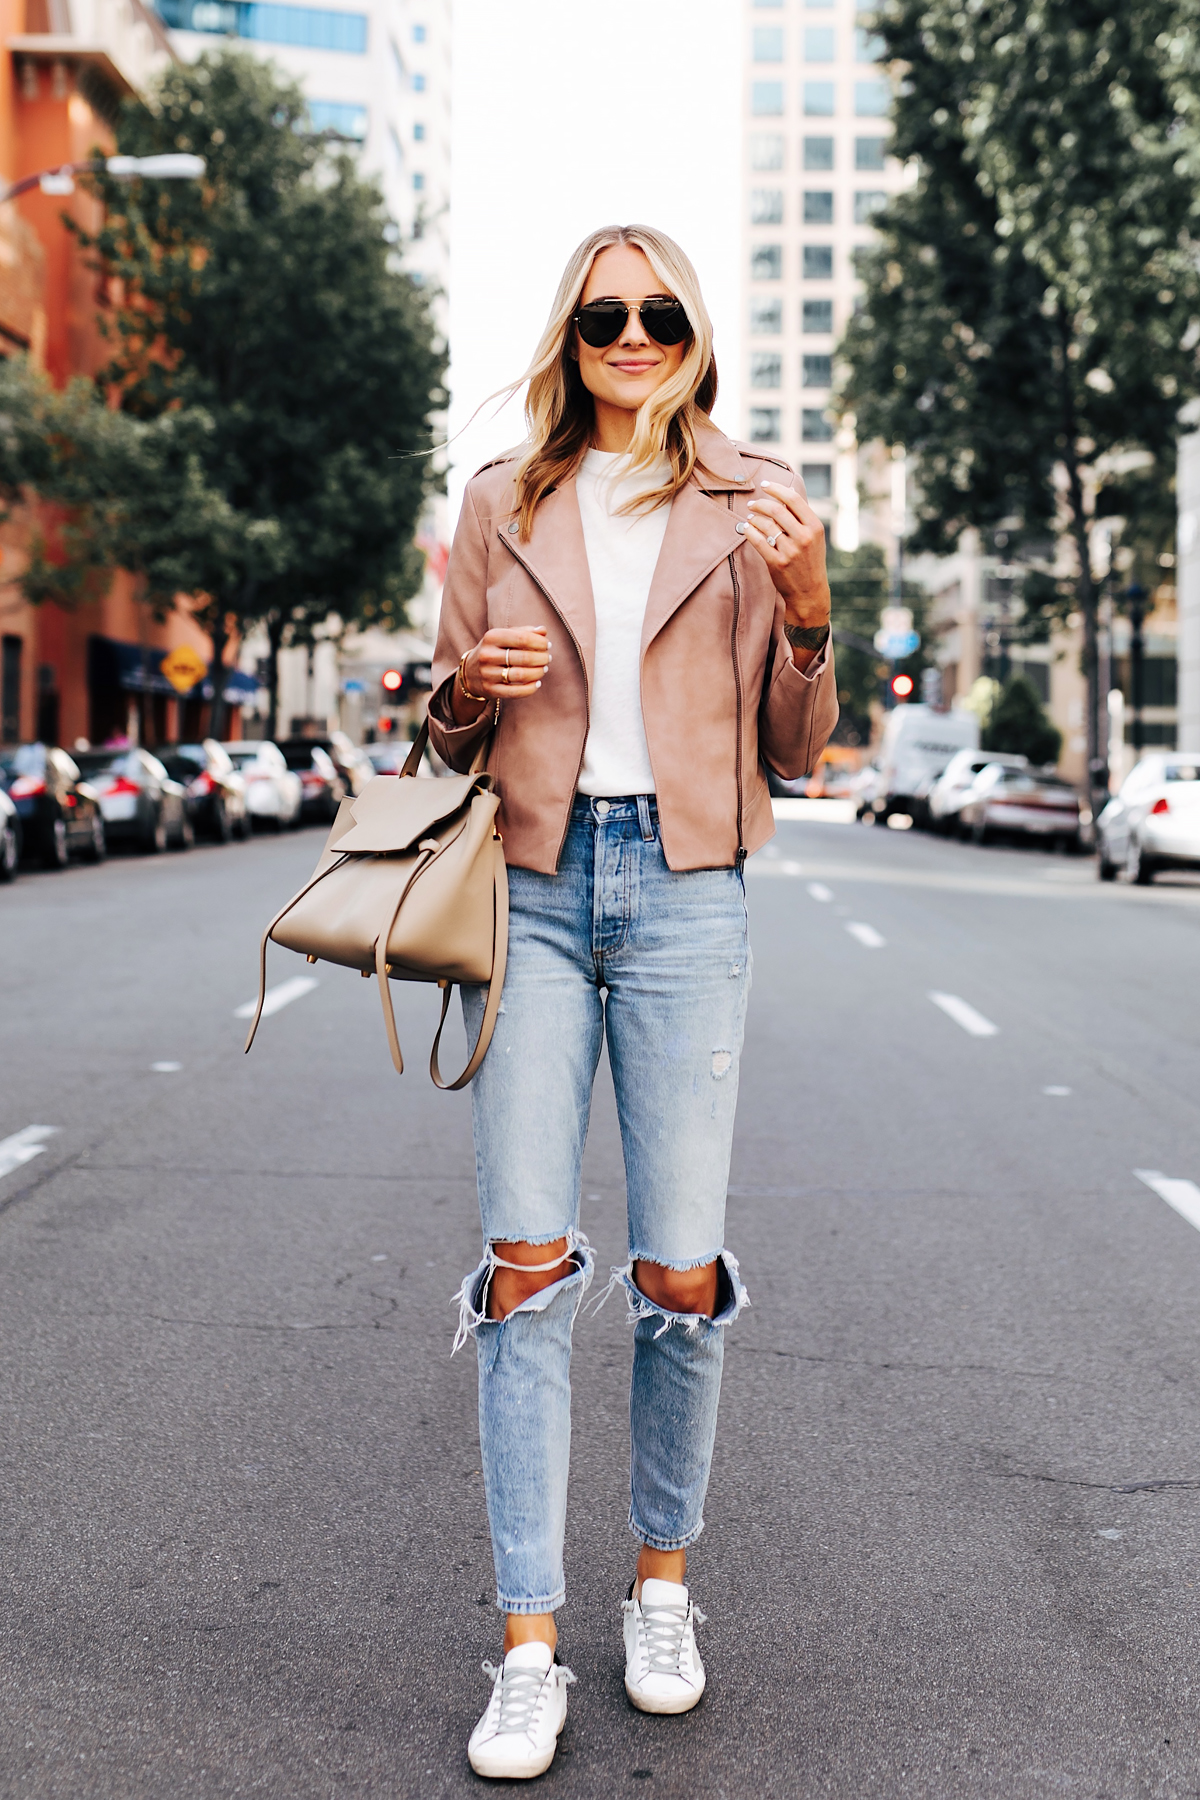 Blonde Woman Wearing Blush Faux Leather Jacket Boyish The Billie Jean Easy Rider Golden Goose Sneakers Celine Mini Belt Bag Fashion Jackson San Diego Fashion Blogger Street Style